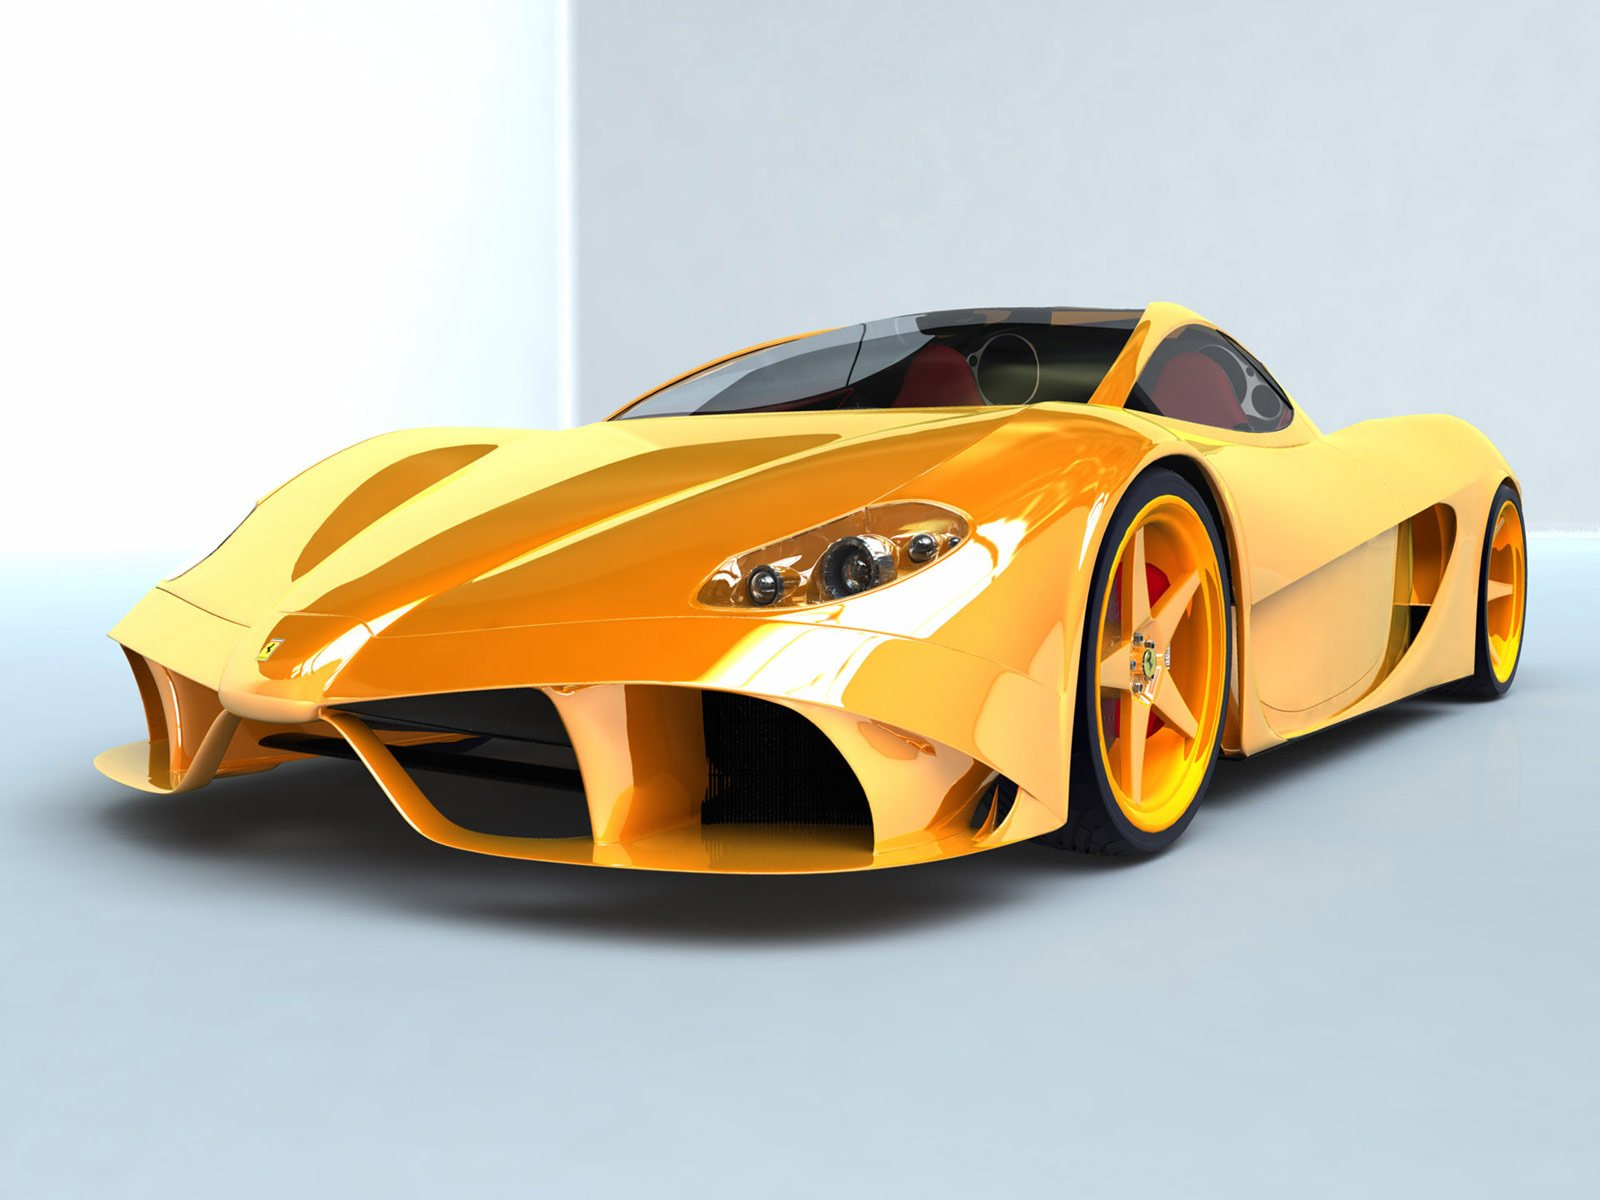 New Cool Cars Wallpapers Online Auto Book